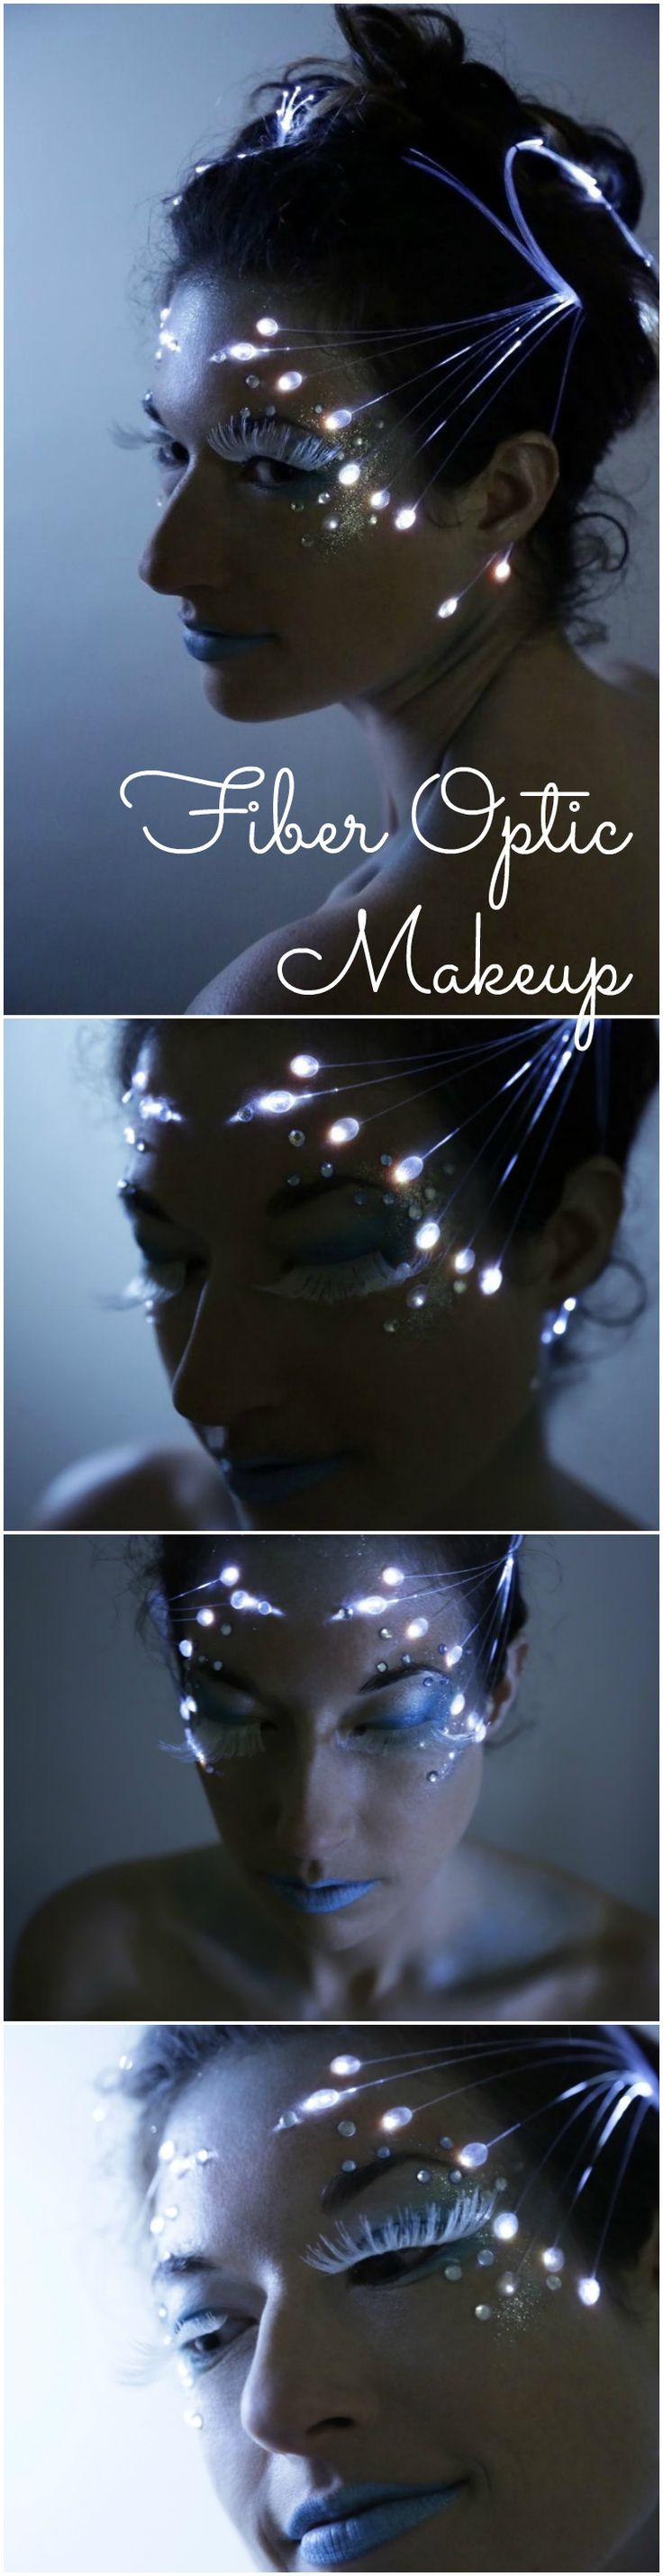 Fiber Optic Makeup | For your next holiday party you don't need genetic engineering, or even electronics skills, to turn yourself into a dazzling bioluminescent creature, just a few supplies and a bit of patience with small objects and glue.